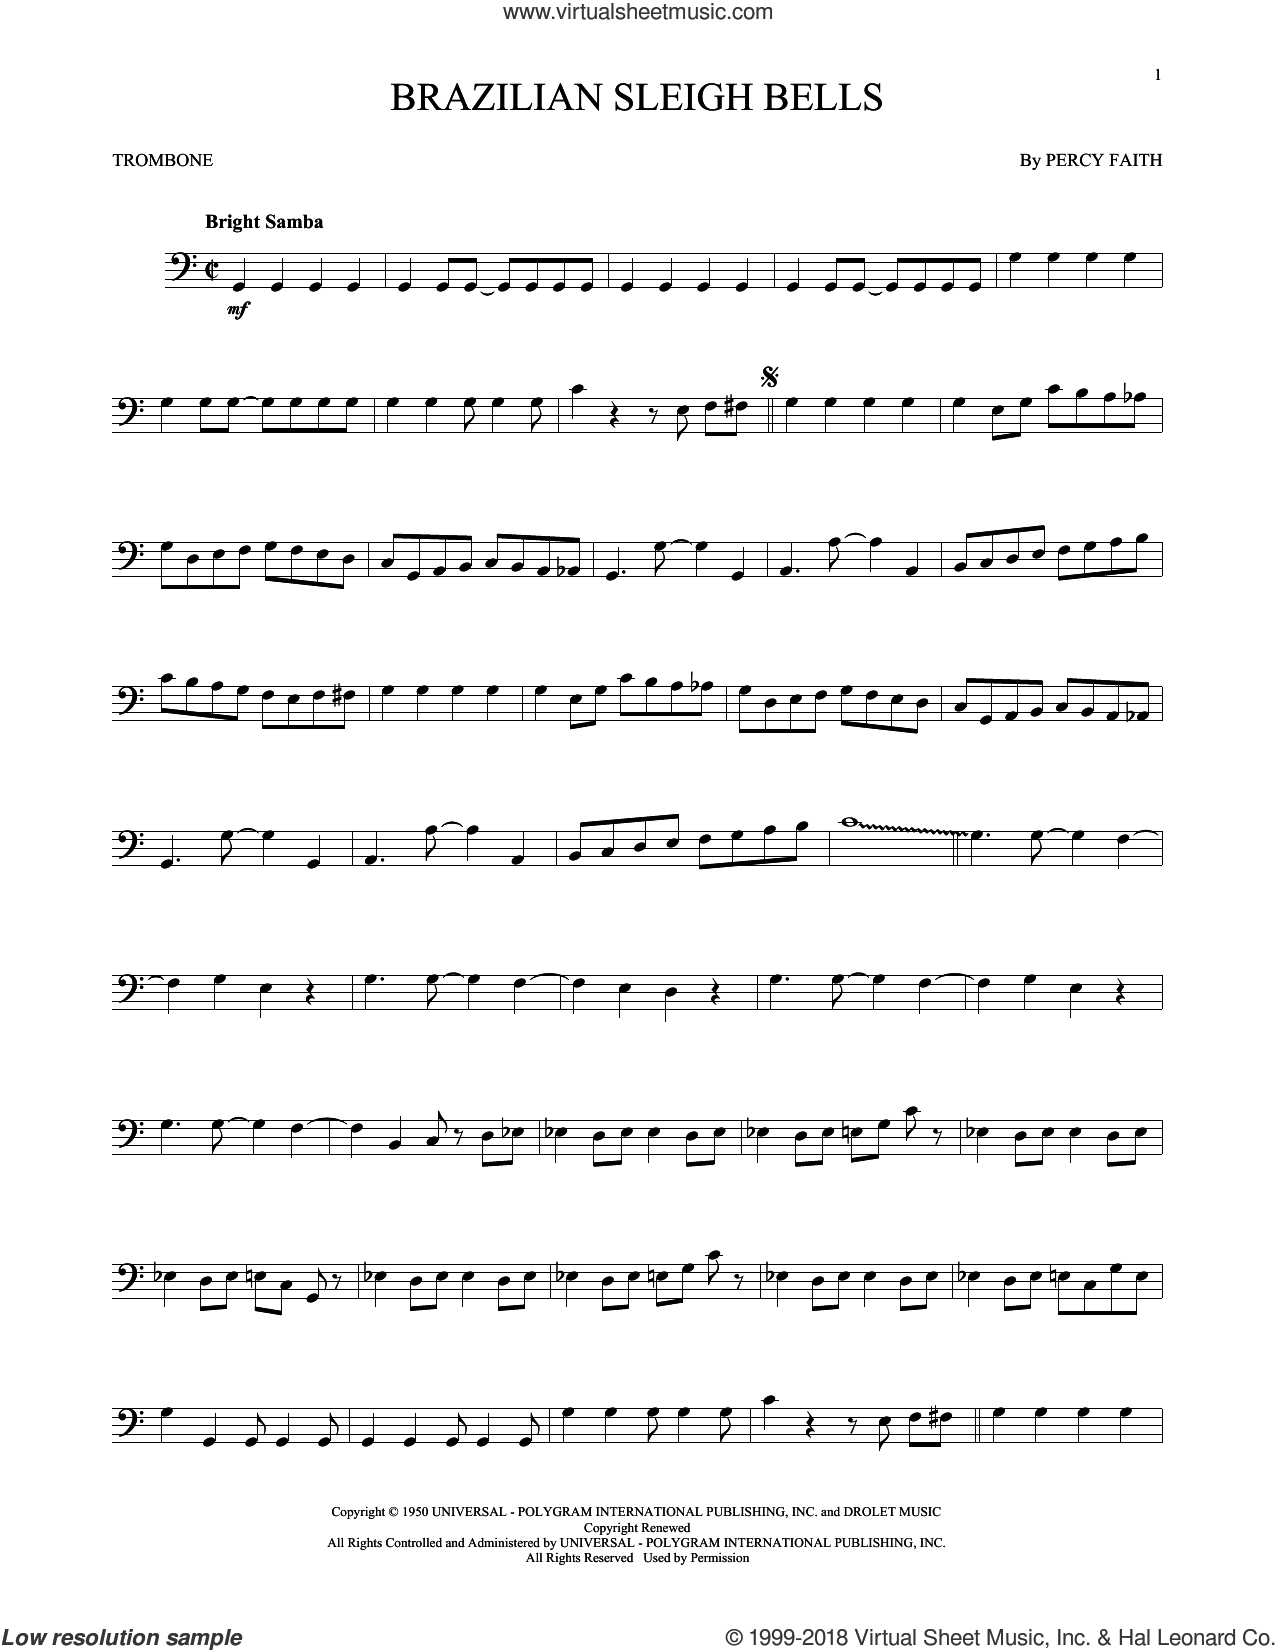 Brazilian Sleigh Bells sheet music for trombone solo by Percy Faith, intermediate skill level